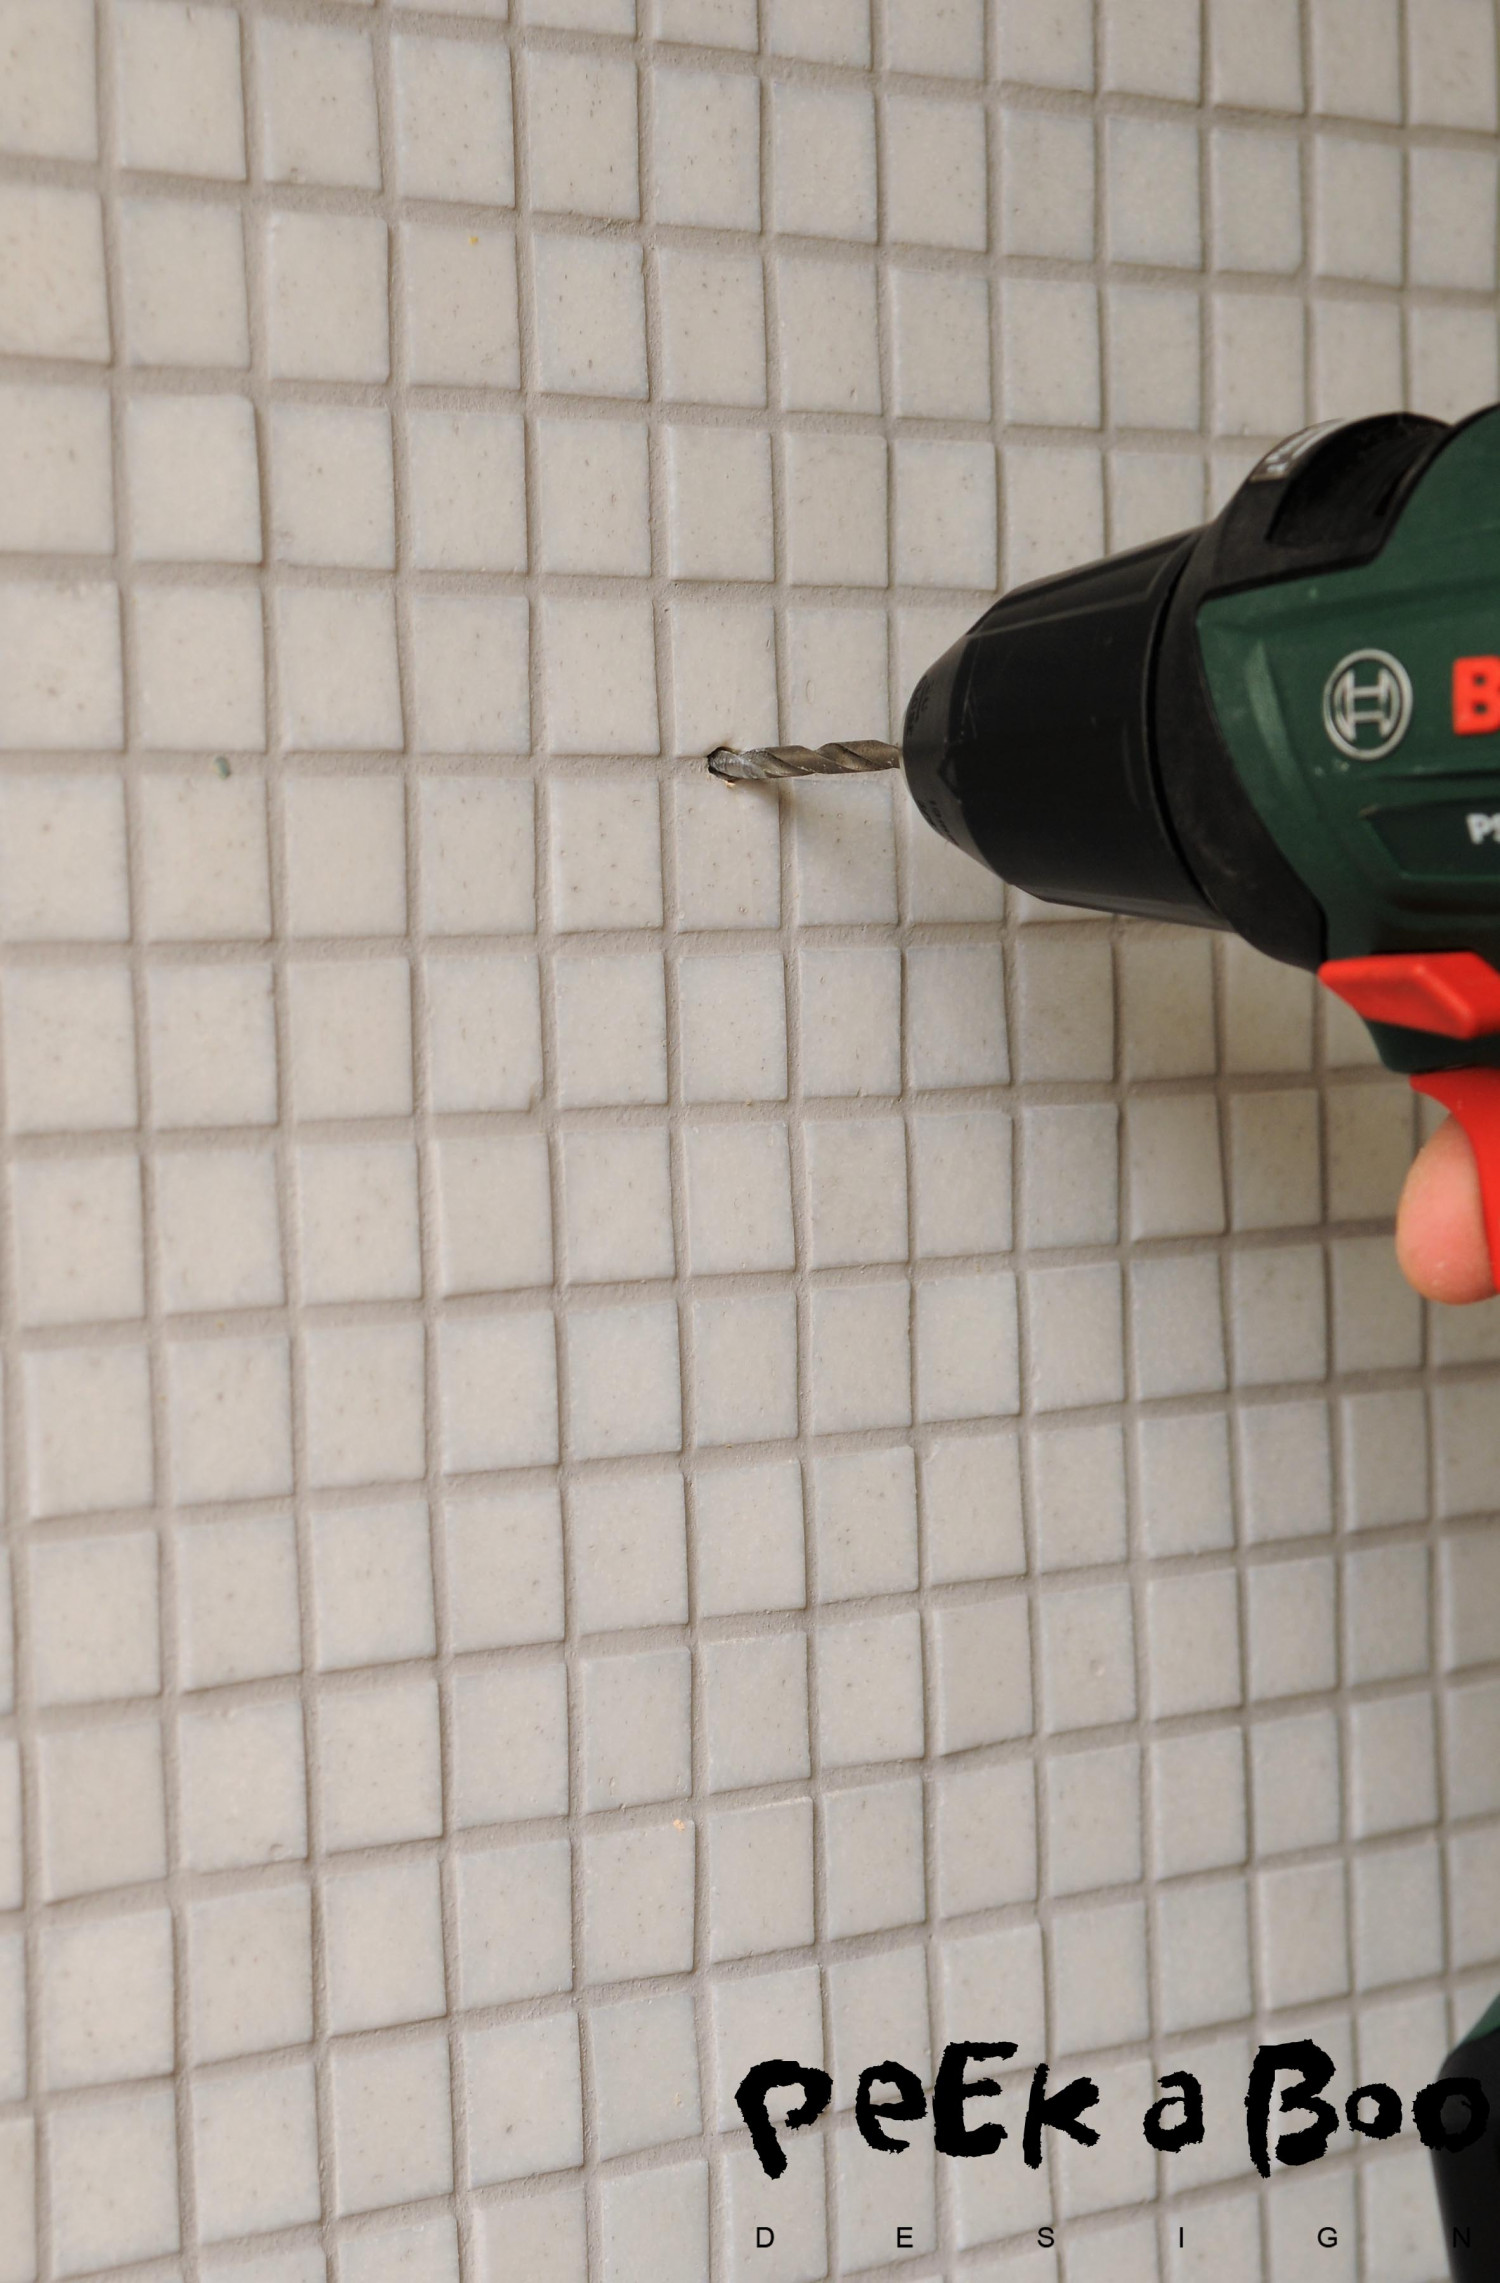 Drill a hole in the wall, try to make the holes between the glass mosaics.